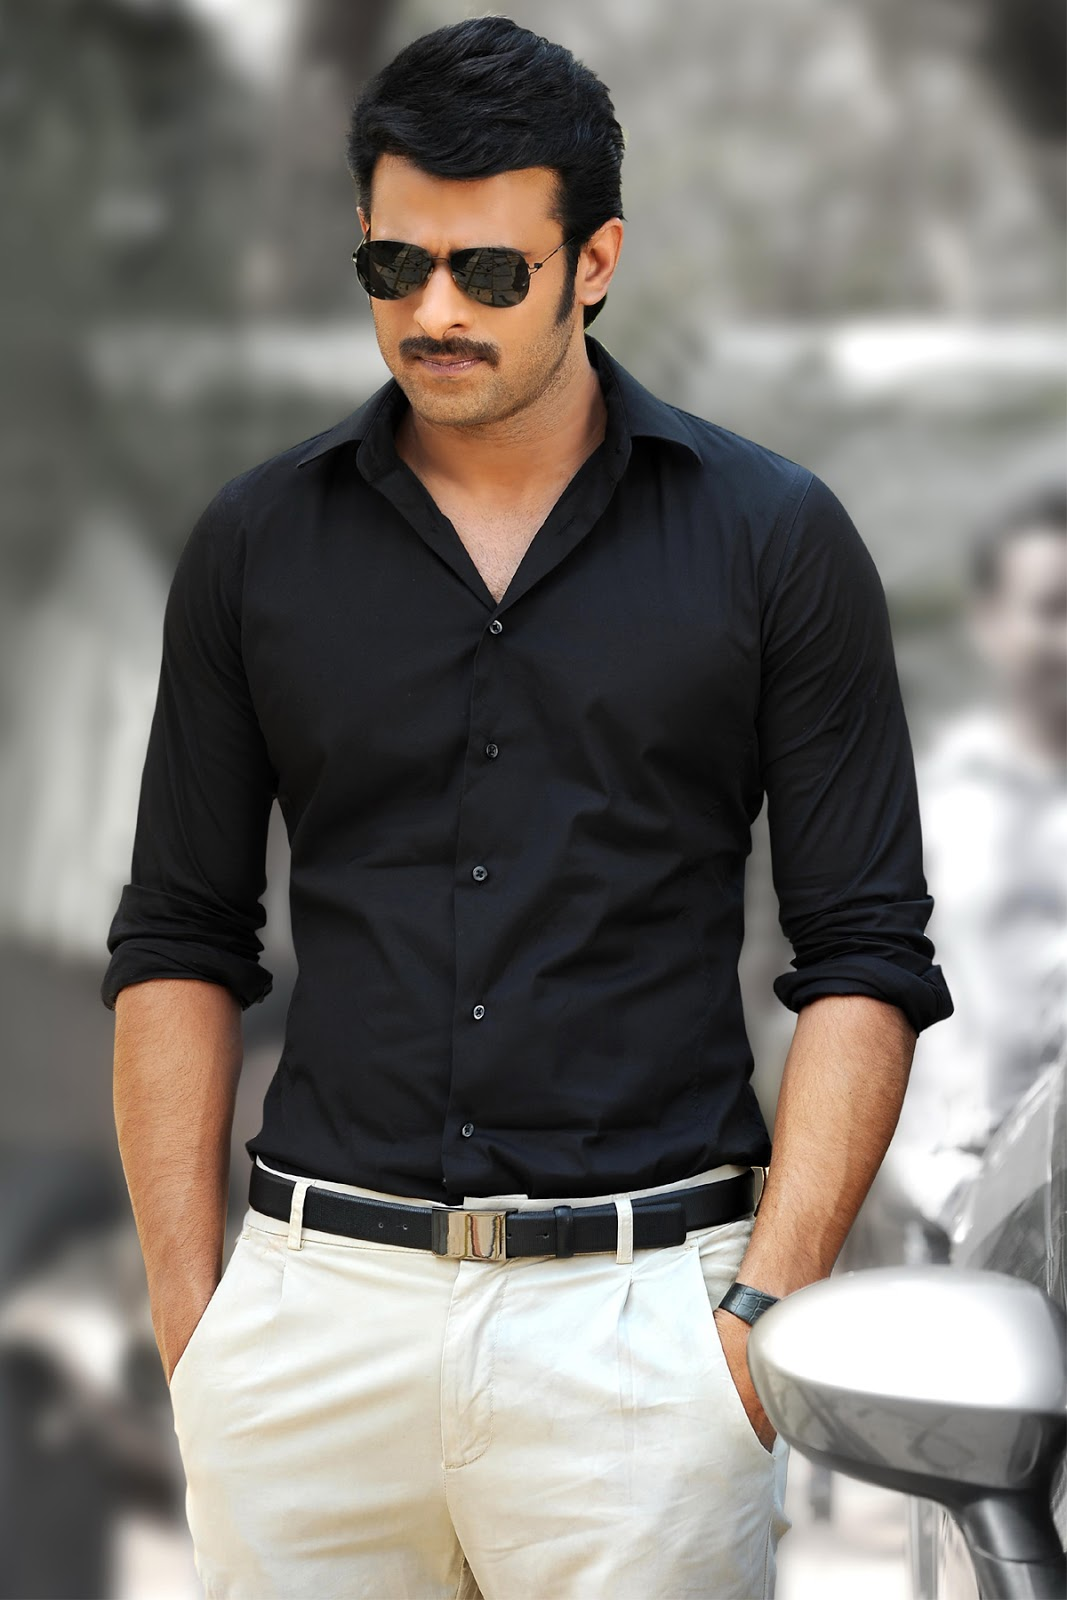 Prabhas Latest Hd Wallpapers